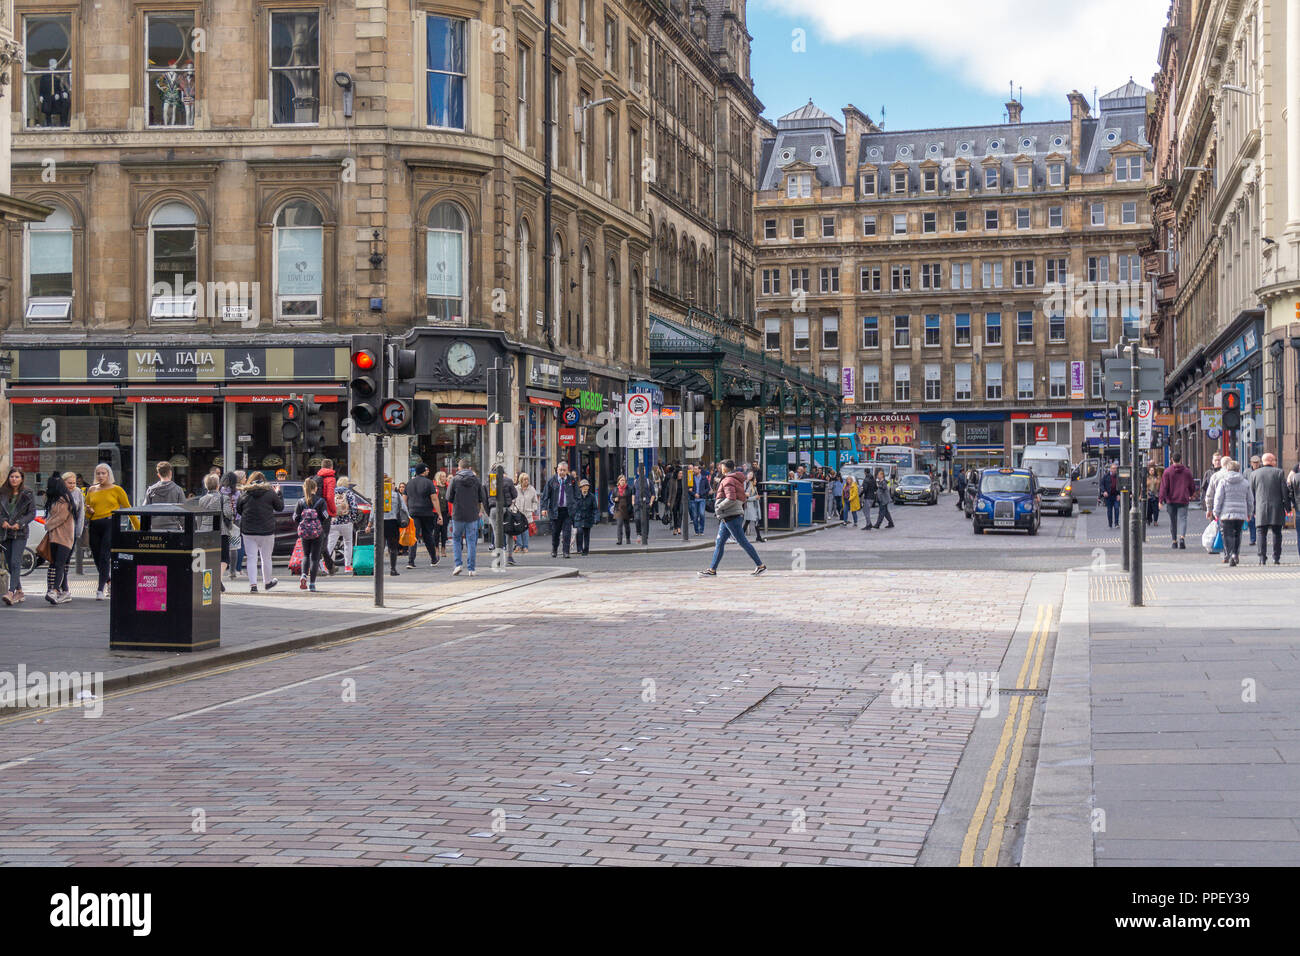 Glasgow City, Scotland, UK - September 22, 2018: Gordon St looking along to Glasgow central Station very busy with pedestrians and traffic. - Stock Image